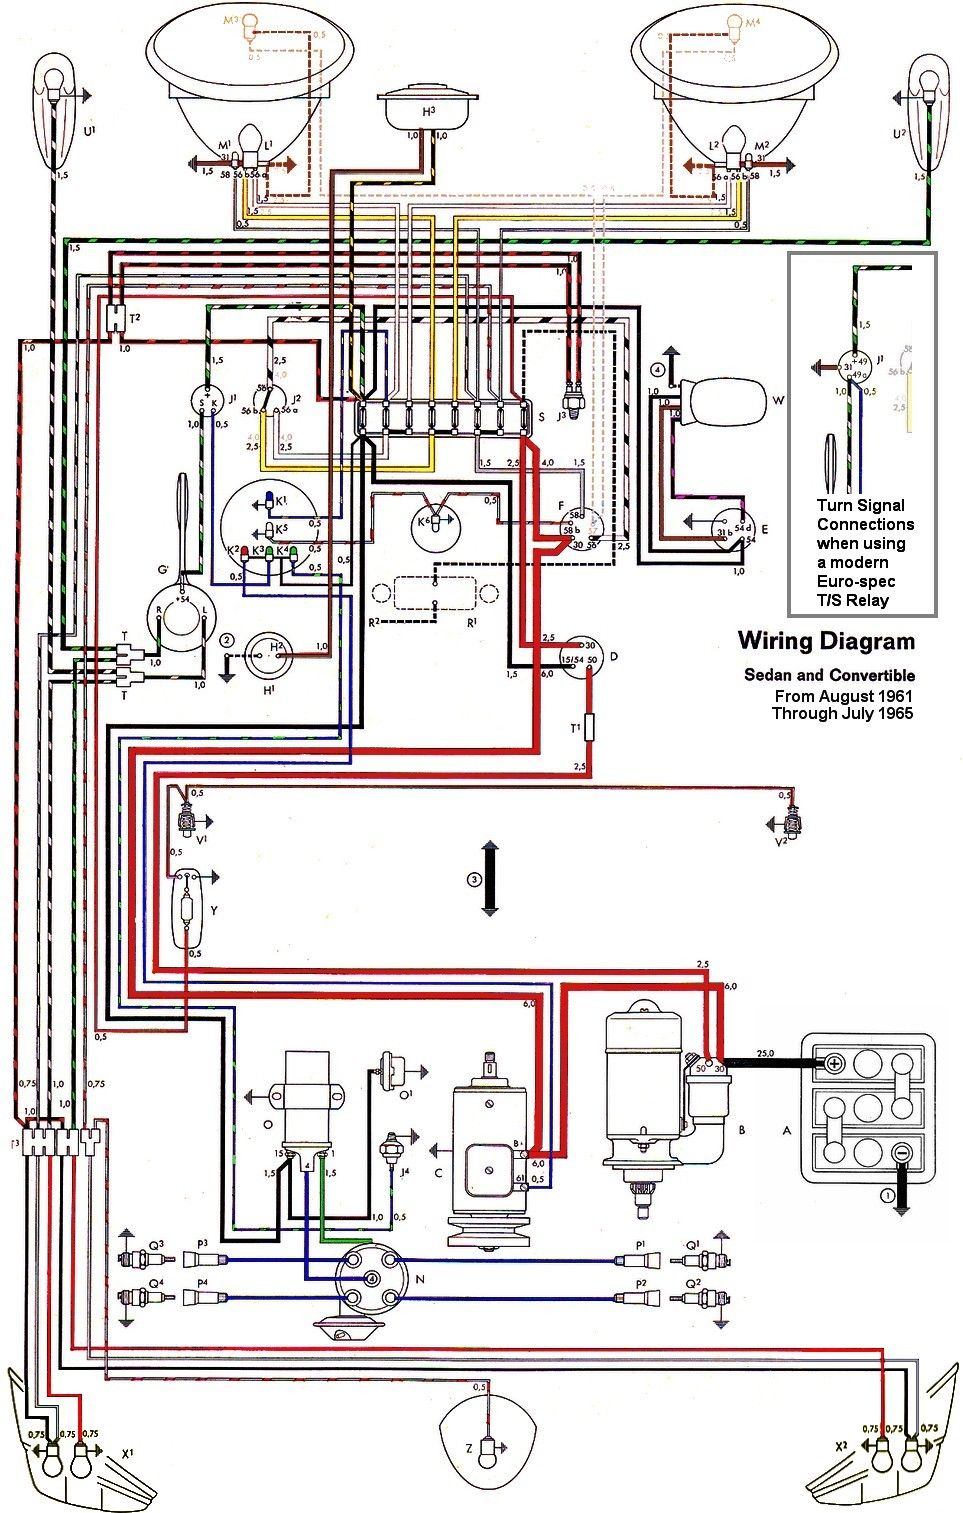 Vw 1600 Wiring Diagram The Portal And Forum Of Beetle Volkswagen Simple Rh 40 Mara Cujas De Coil